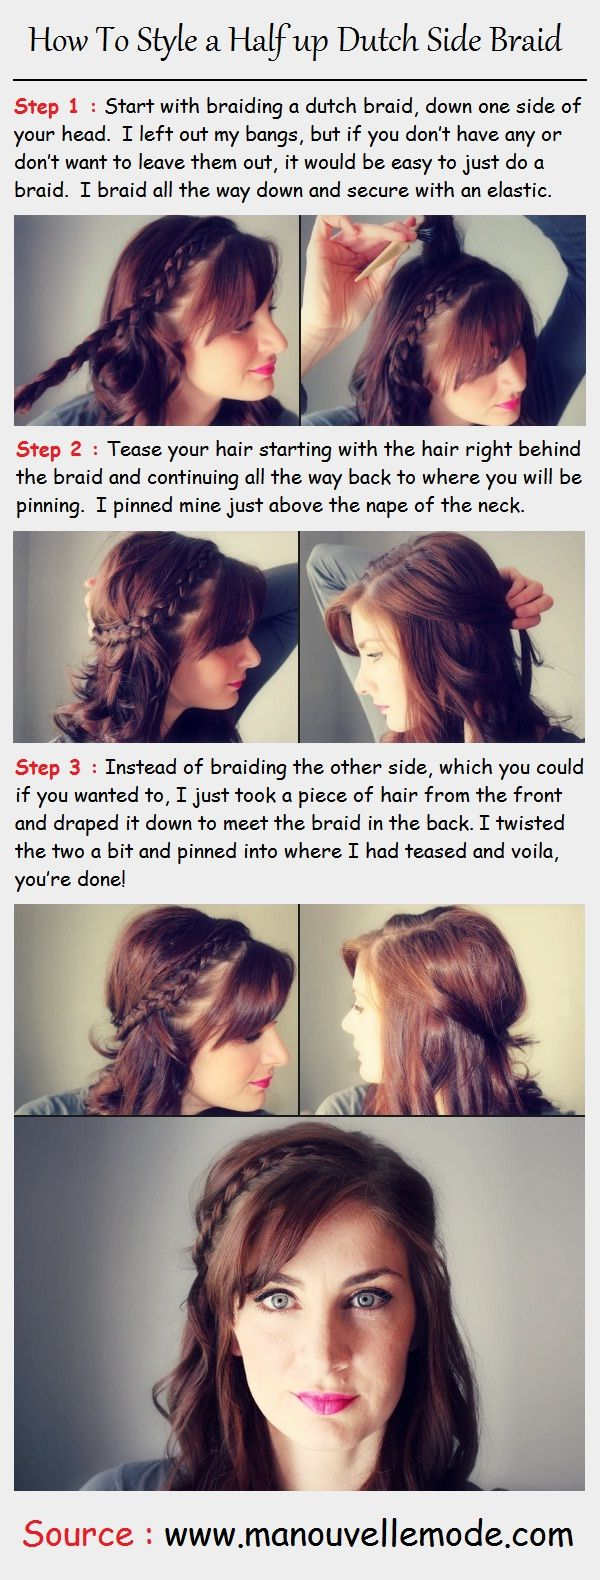 How To Style A Half Up Dutch Side Braid  Pintutorials